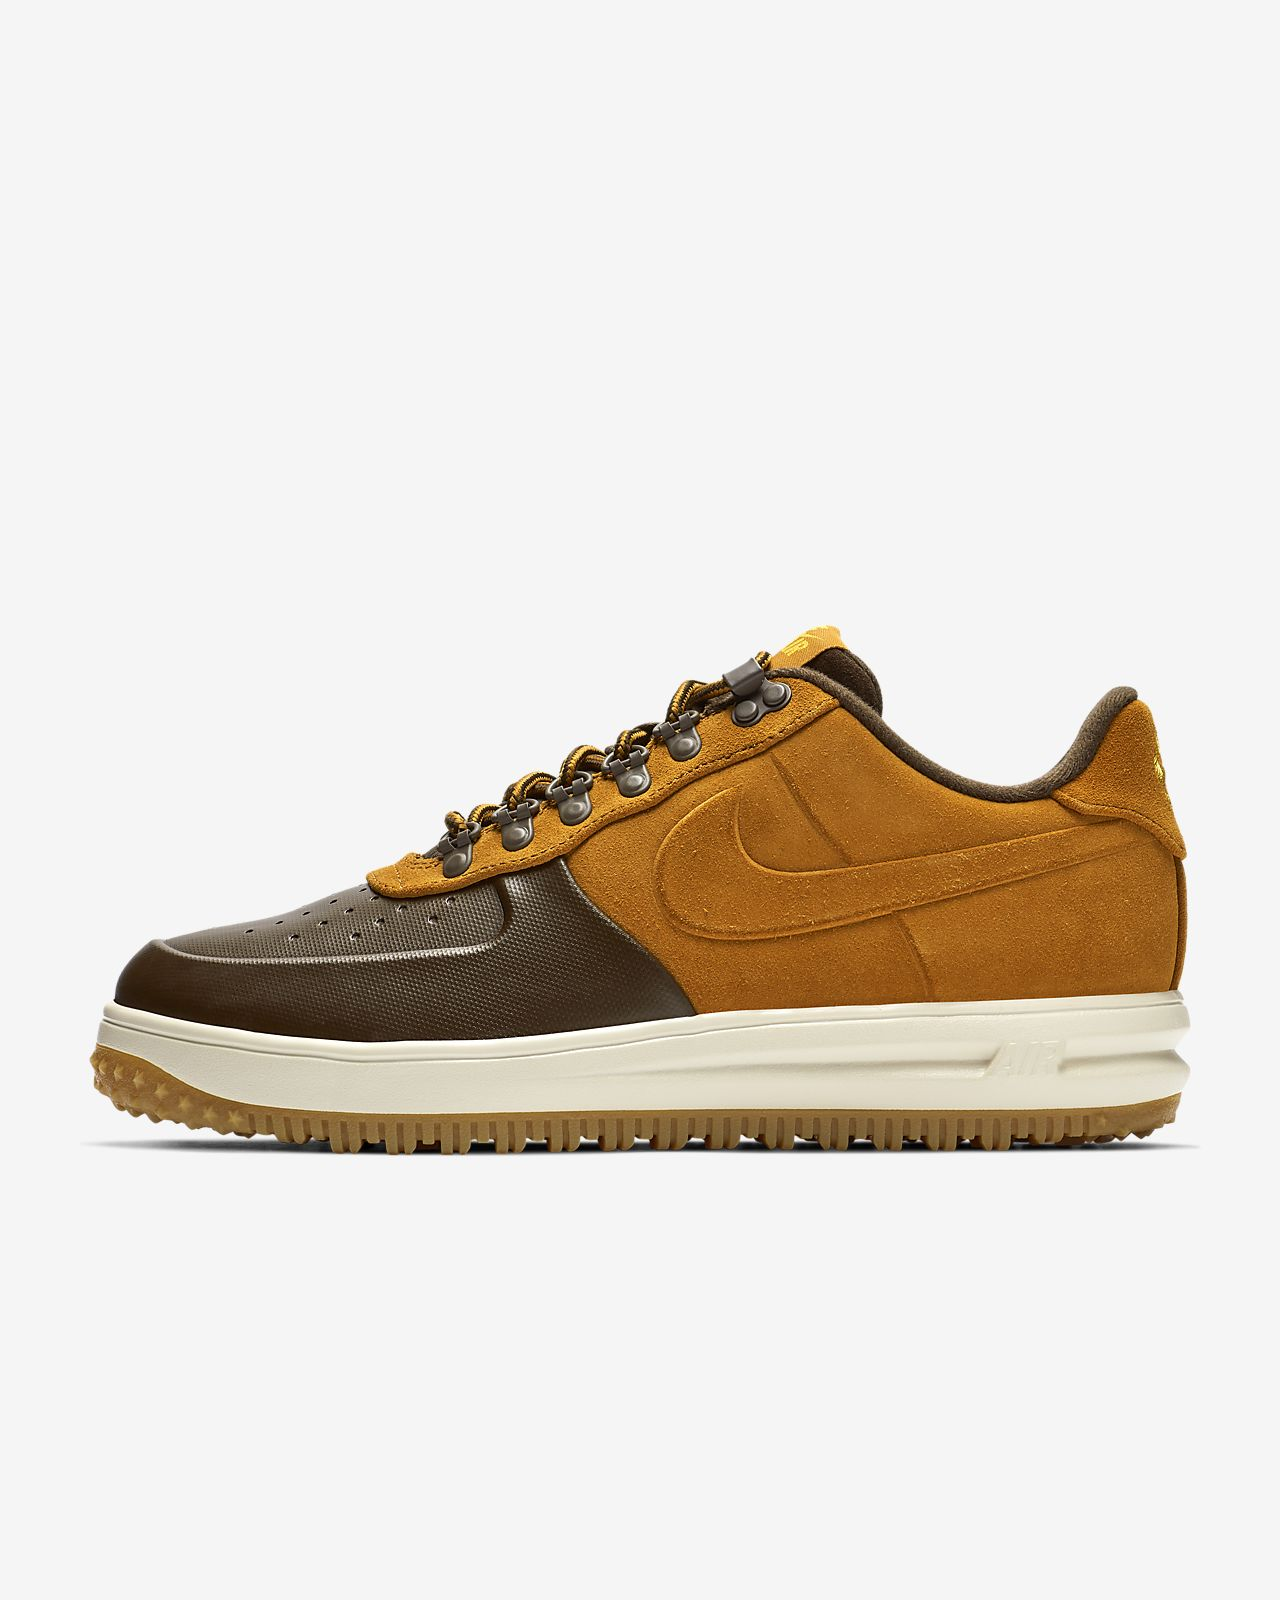 88496236a979 Nike Lunar Force 1 Duckboot Low Men s Shoe. Nike.com